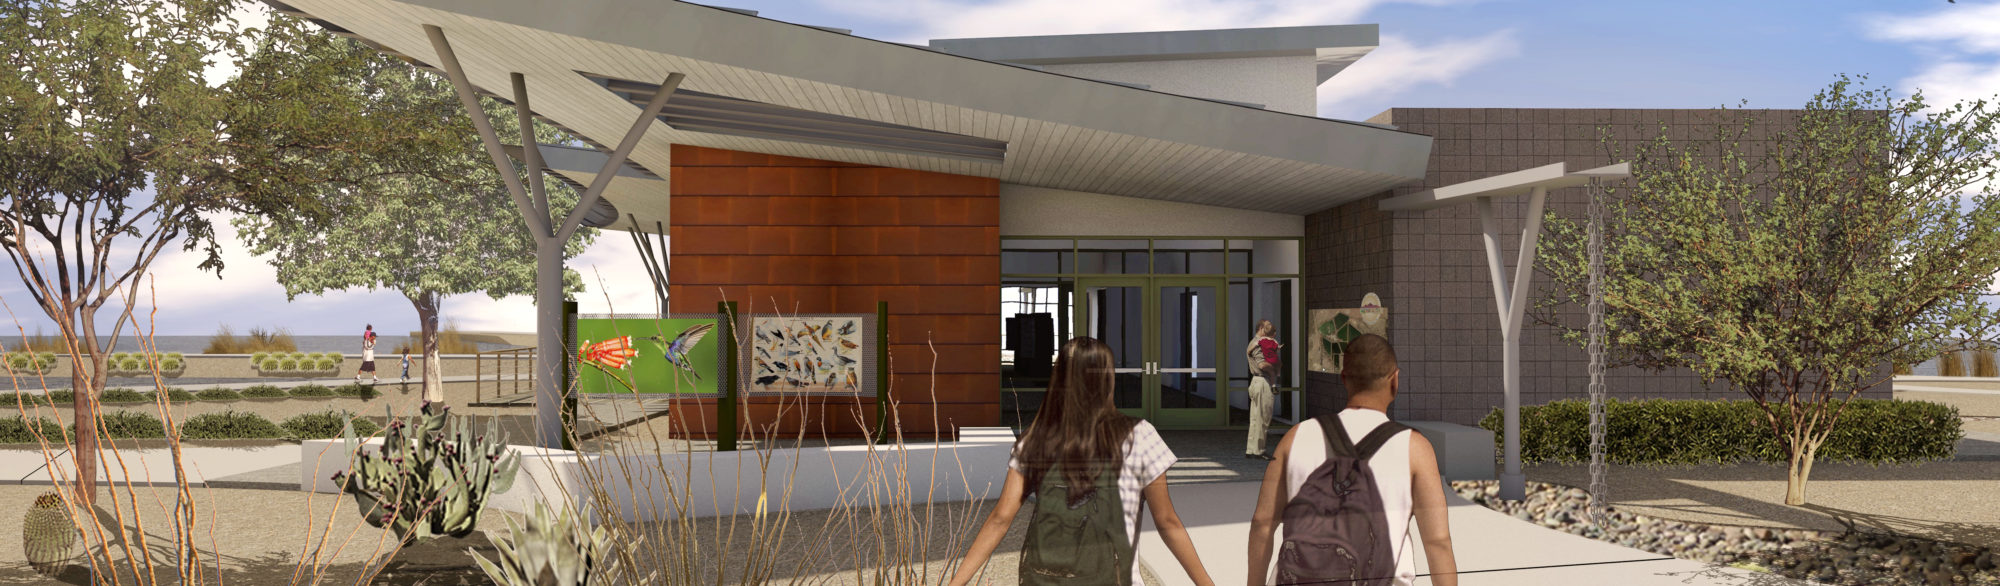 An exterior rendering of the proposed visitor center at the Henderson Bird Viewing Preserve, designed by LGA Architecture.